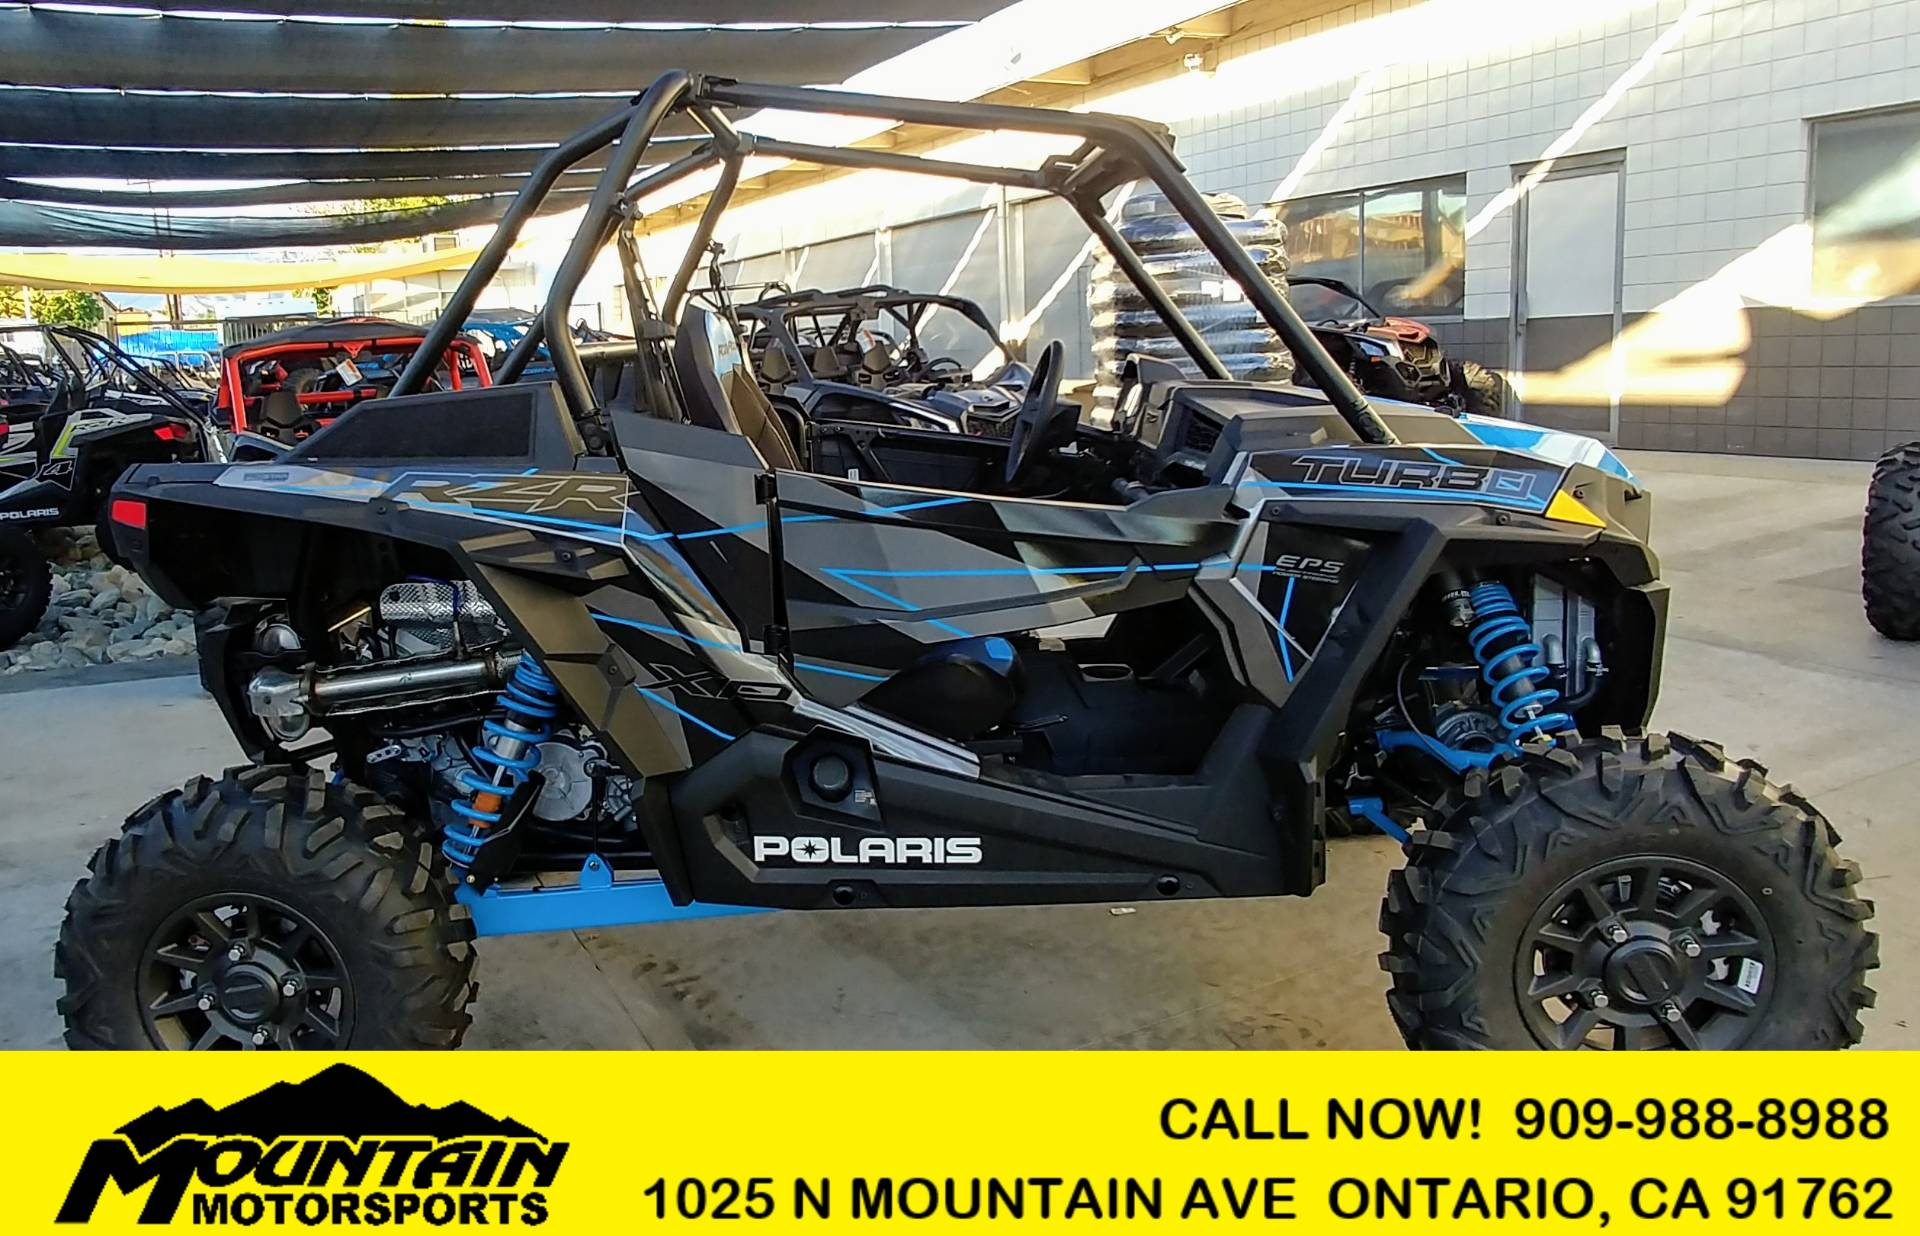 2019 Polaris RZR XP Turbo in Ontario, California - Photo 1